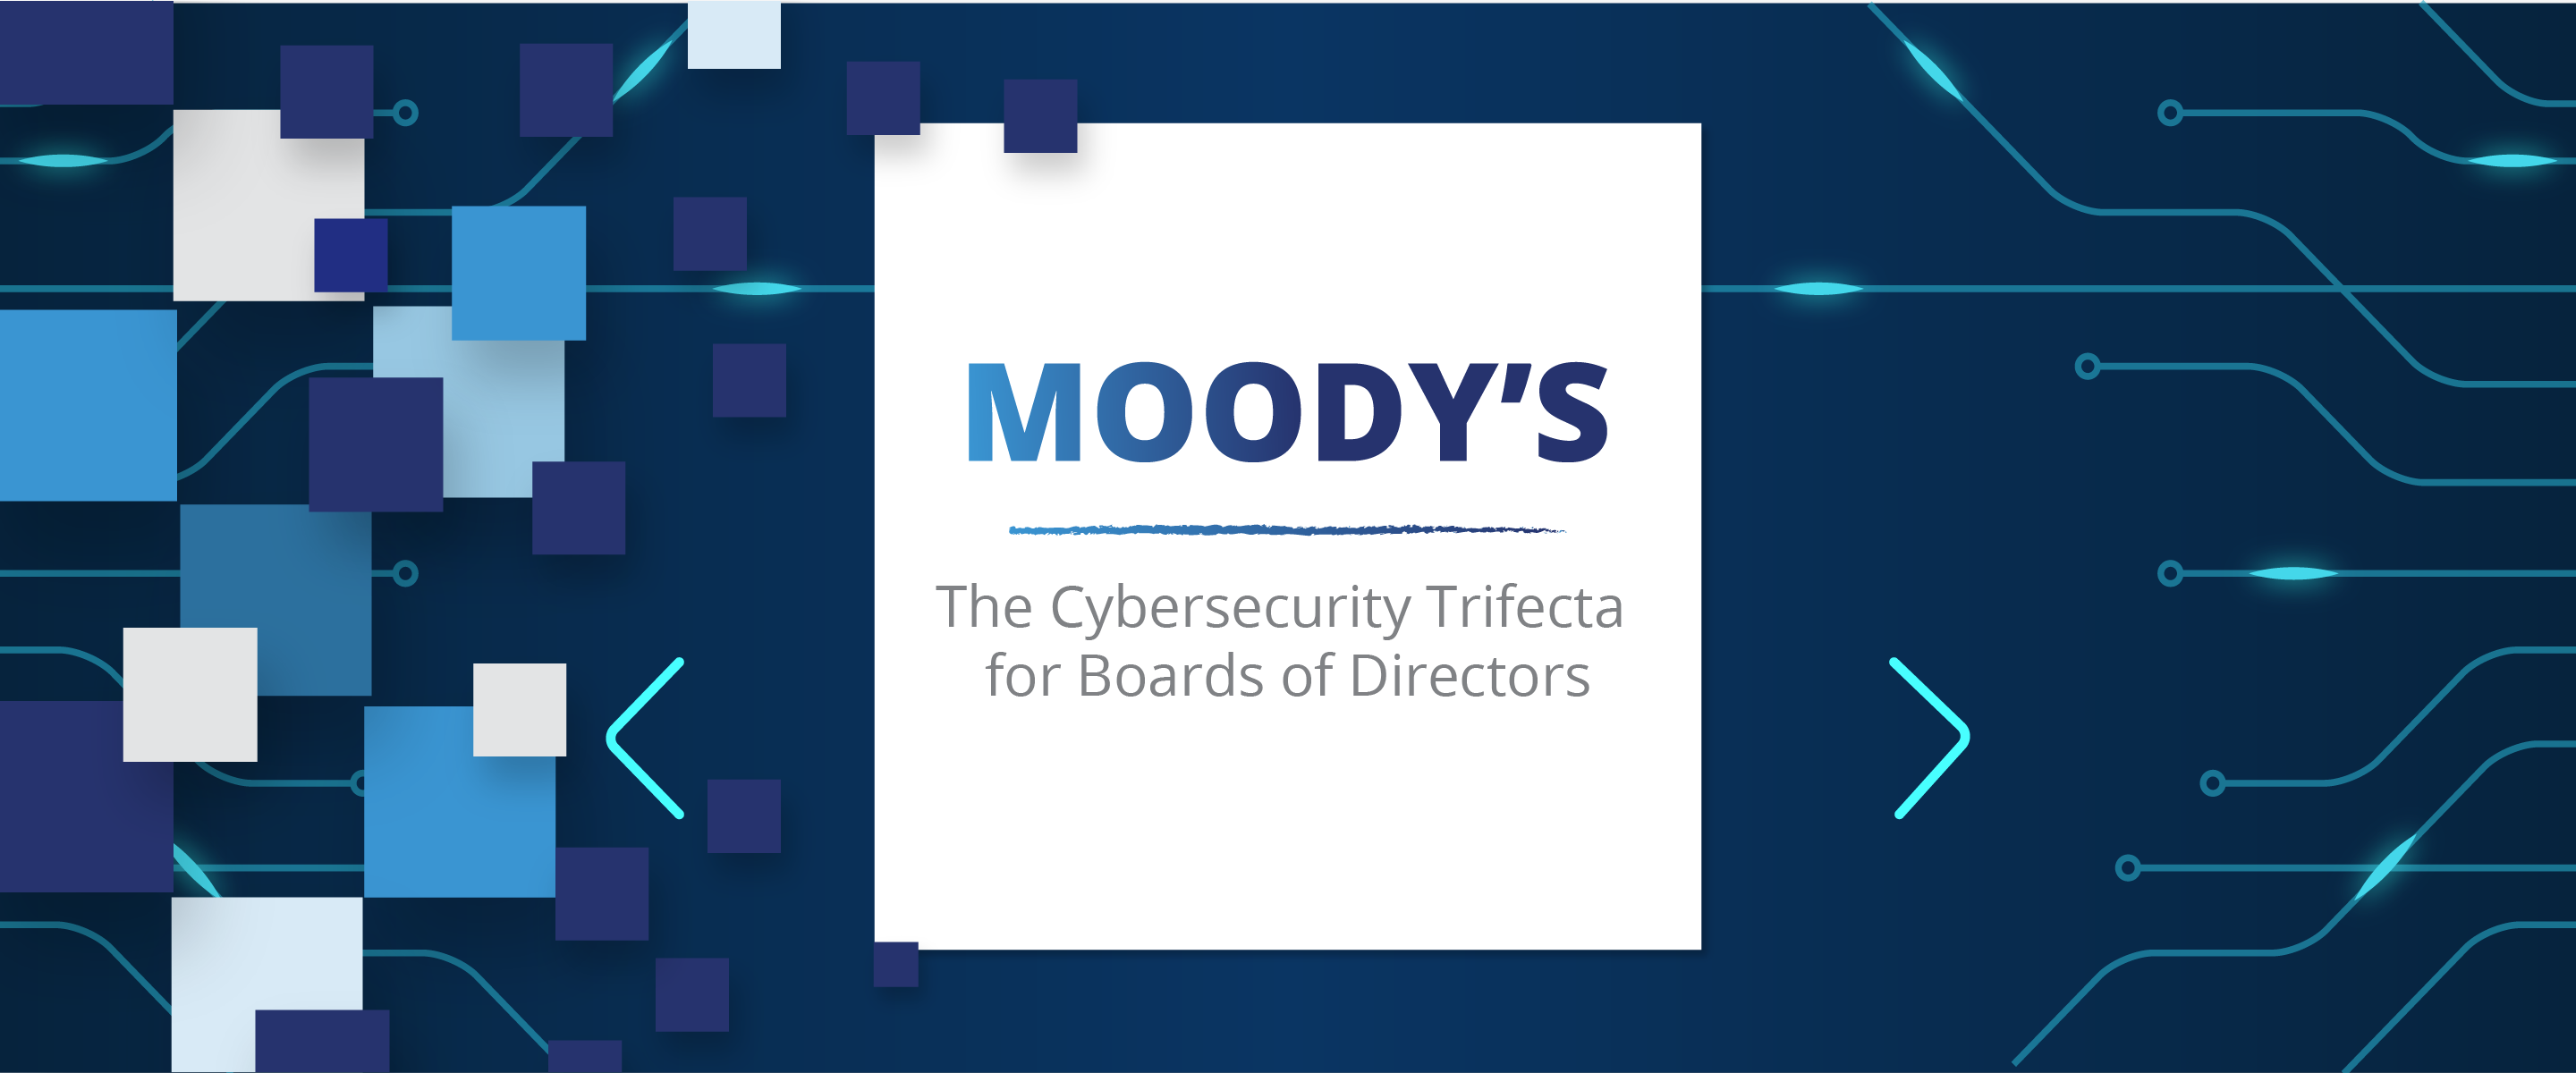 Moody's; The Cybersecurity Trifecta for Boards of Directors